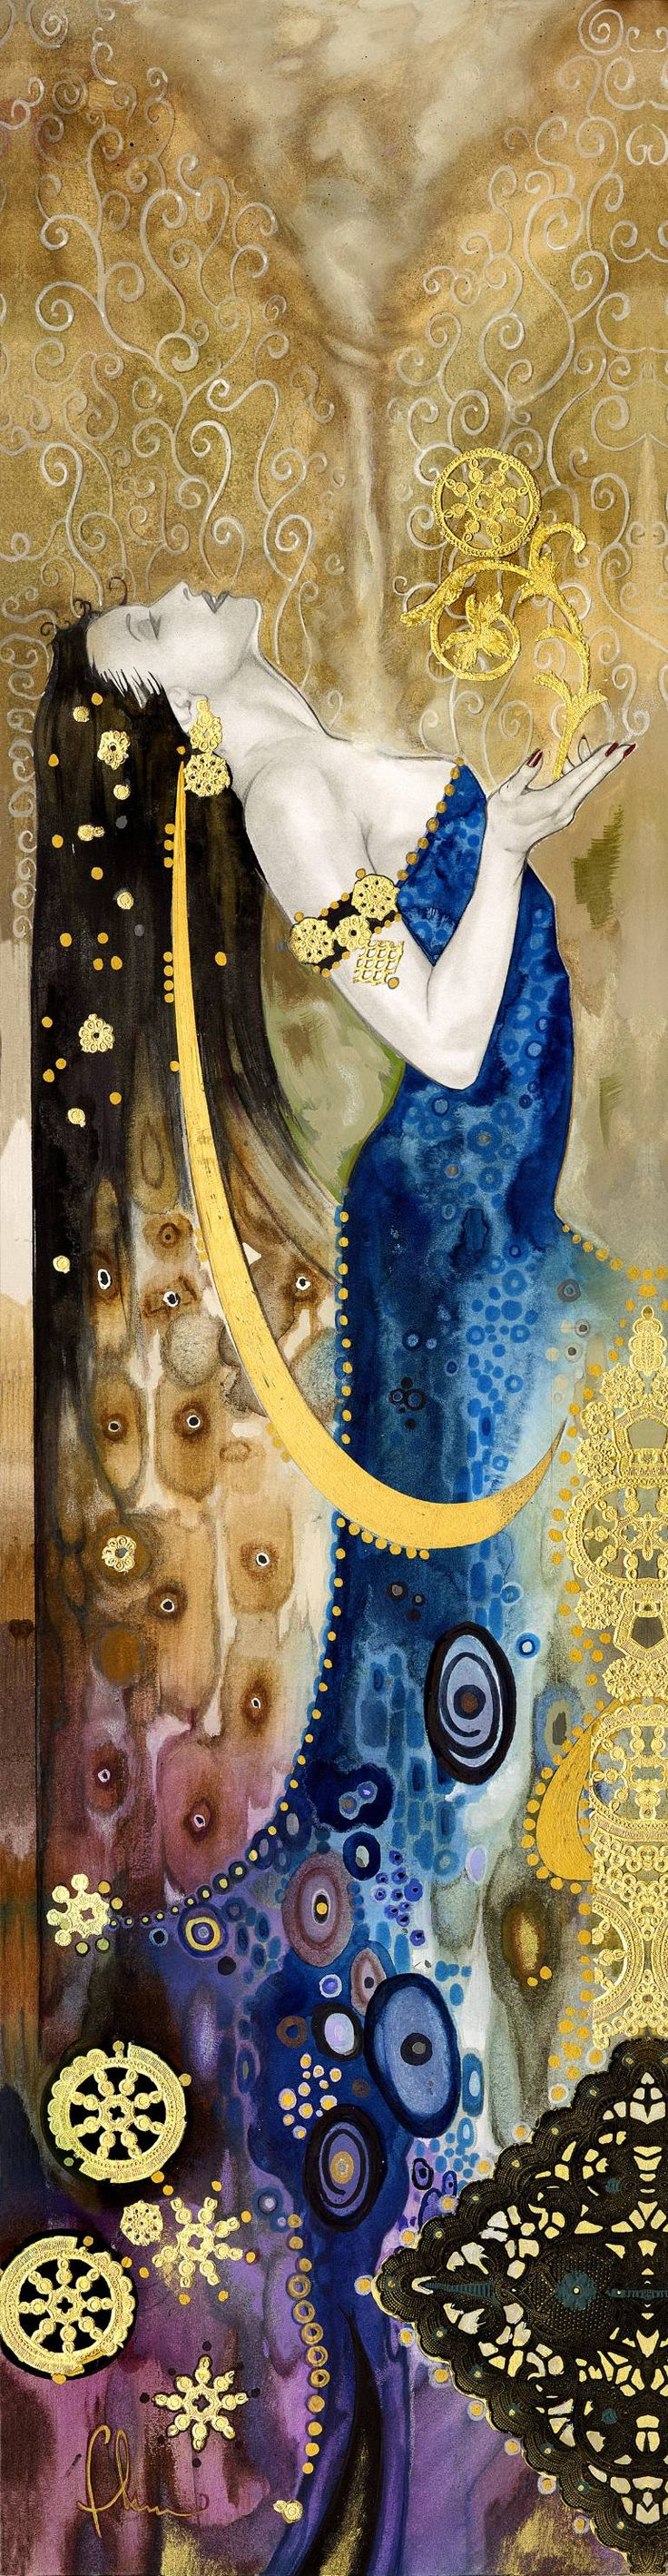 "Saatchi Art Artist Tom Fleming; Painting, ""Spirit & Life"" #art - Painting: Watercolor on Canvas. Size: 44 H x 11 W x 2 in Original is sold, but it is available as a beautiful canvas gallery wrap. Keywords: positive, spirit, klimt, figurative, Inpirational"